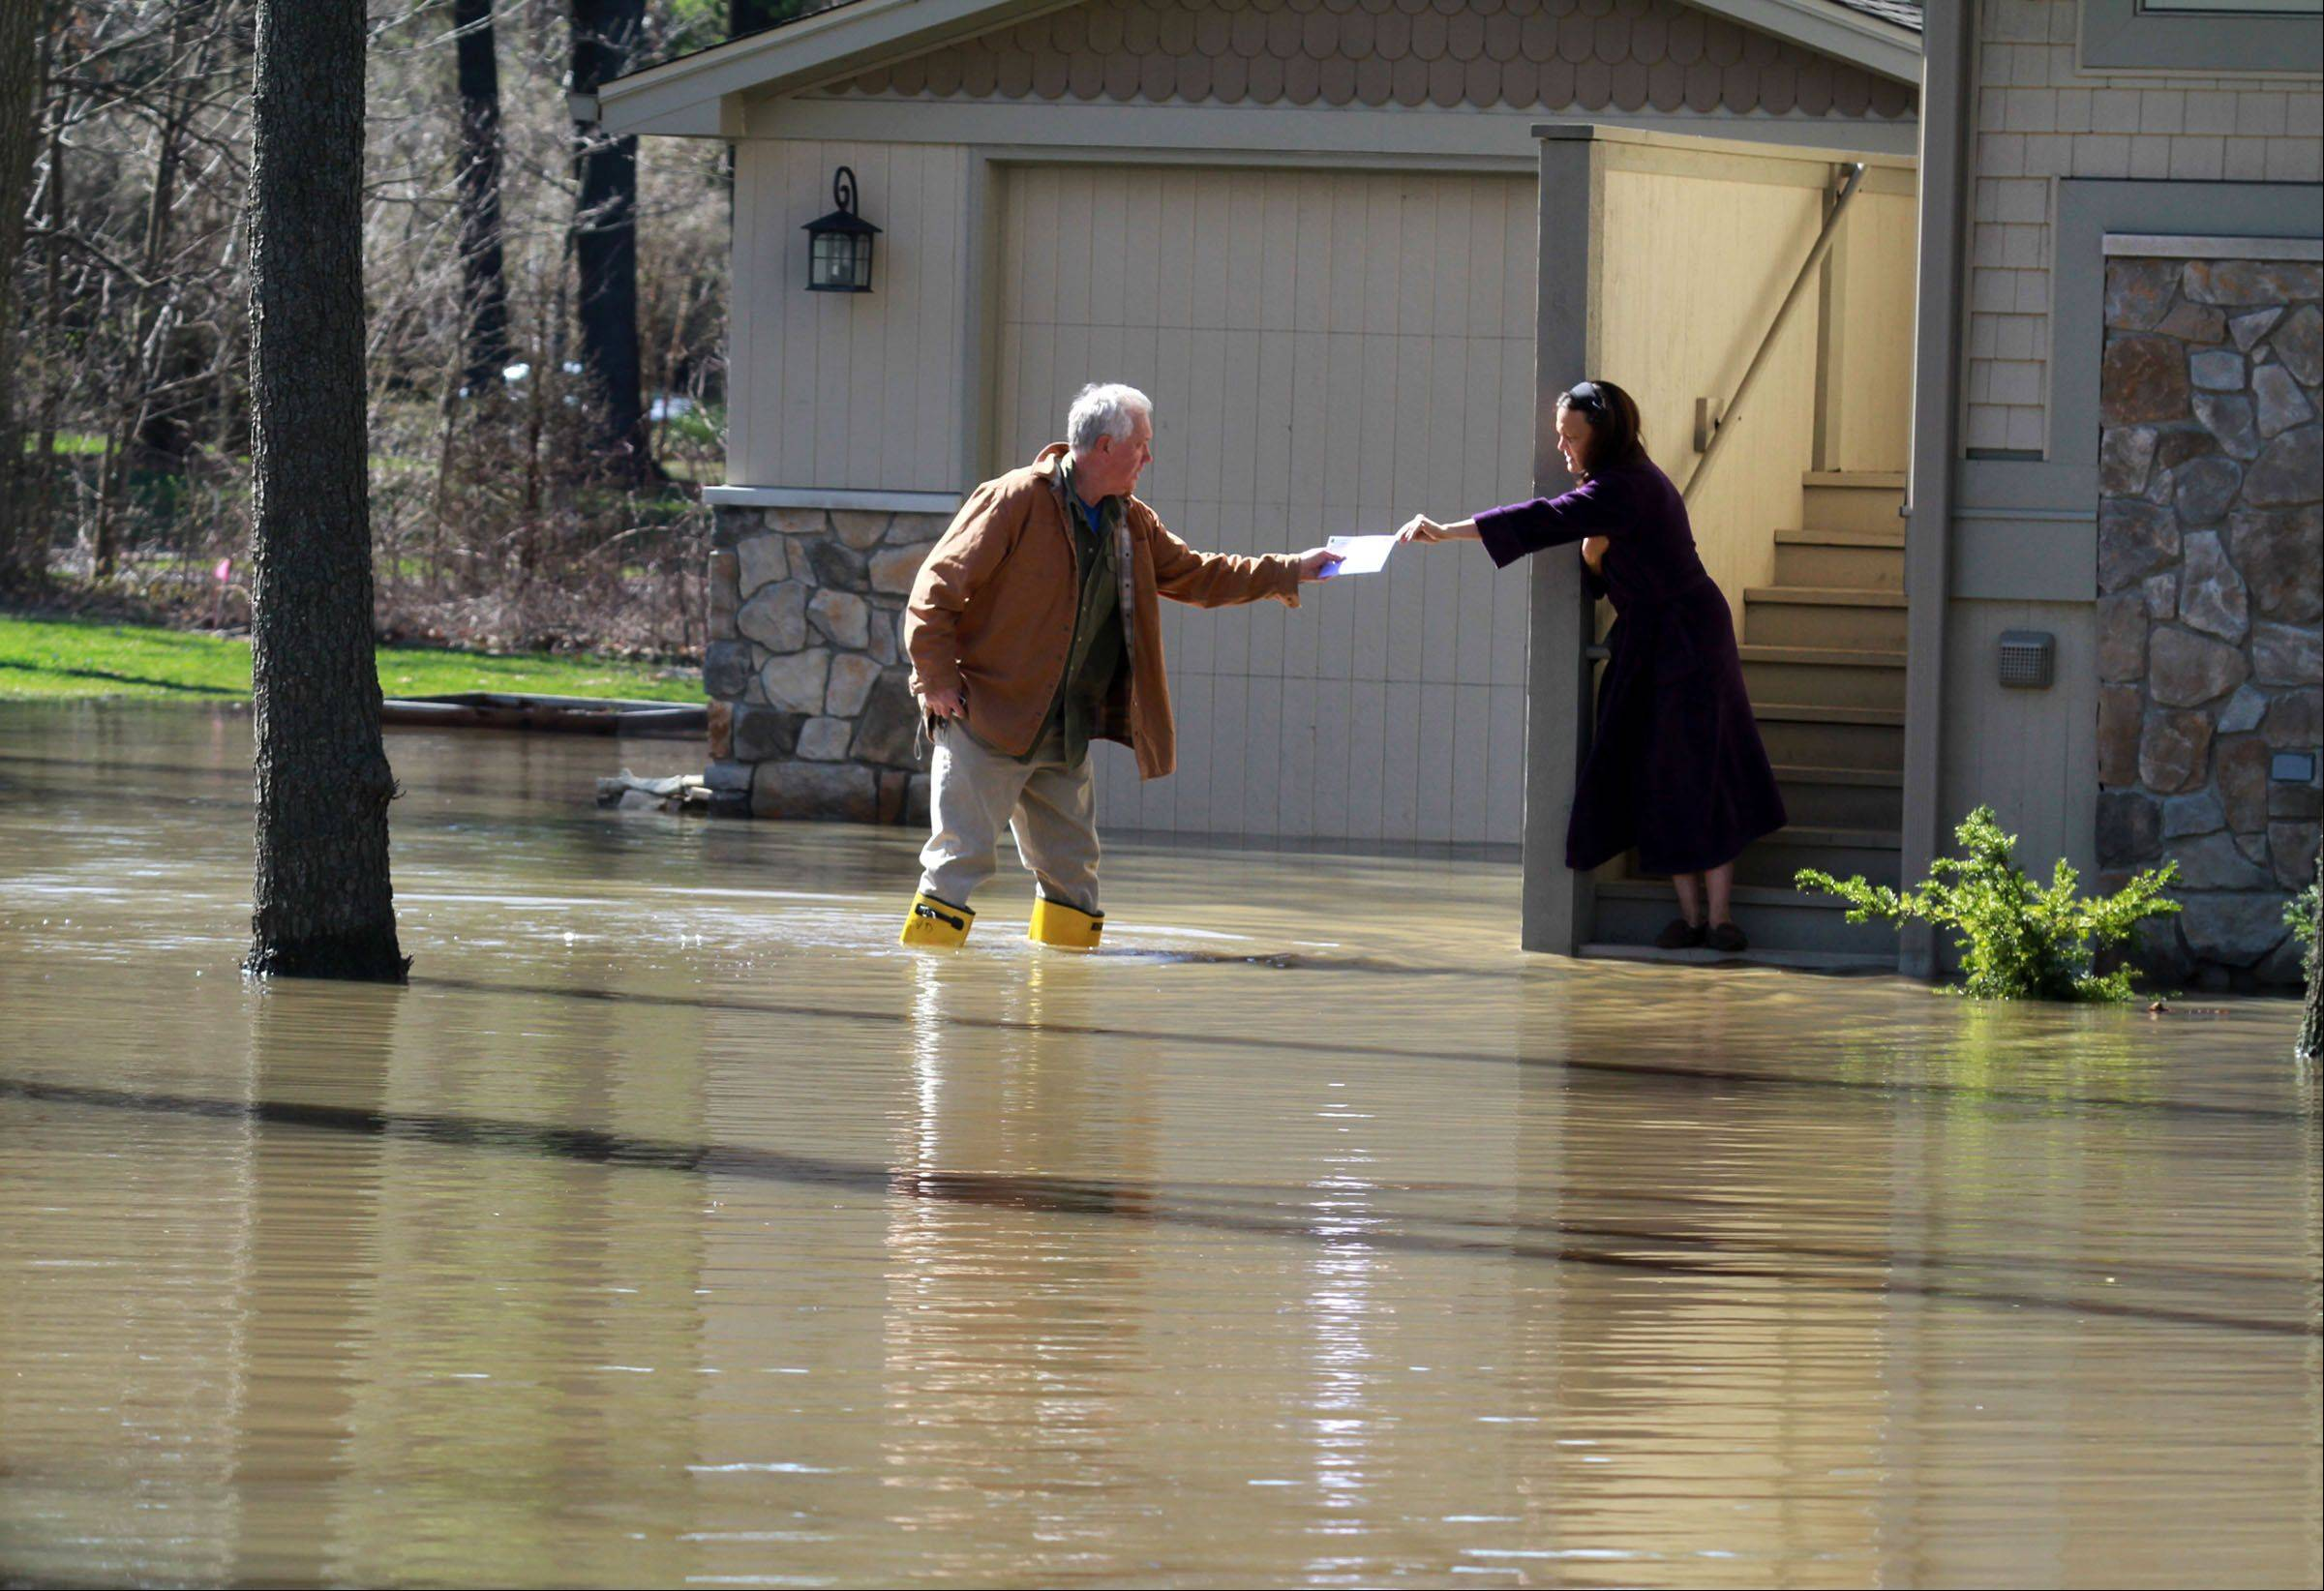 Michelle VanDuynhoven gives her husband, John, a letter to mail at the bottom of the steps to their home on Stonegate Circle in Lincolnshire on Saturday, April 20, 2013. John said there was no water in their house because they rebuilt it higher up in 2010.